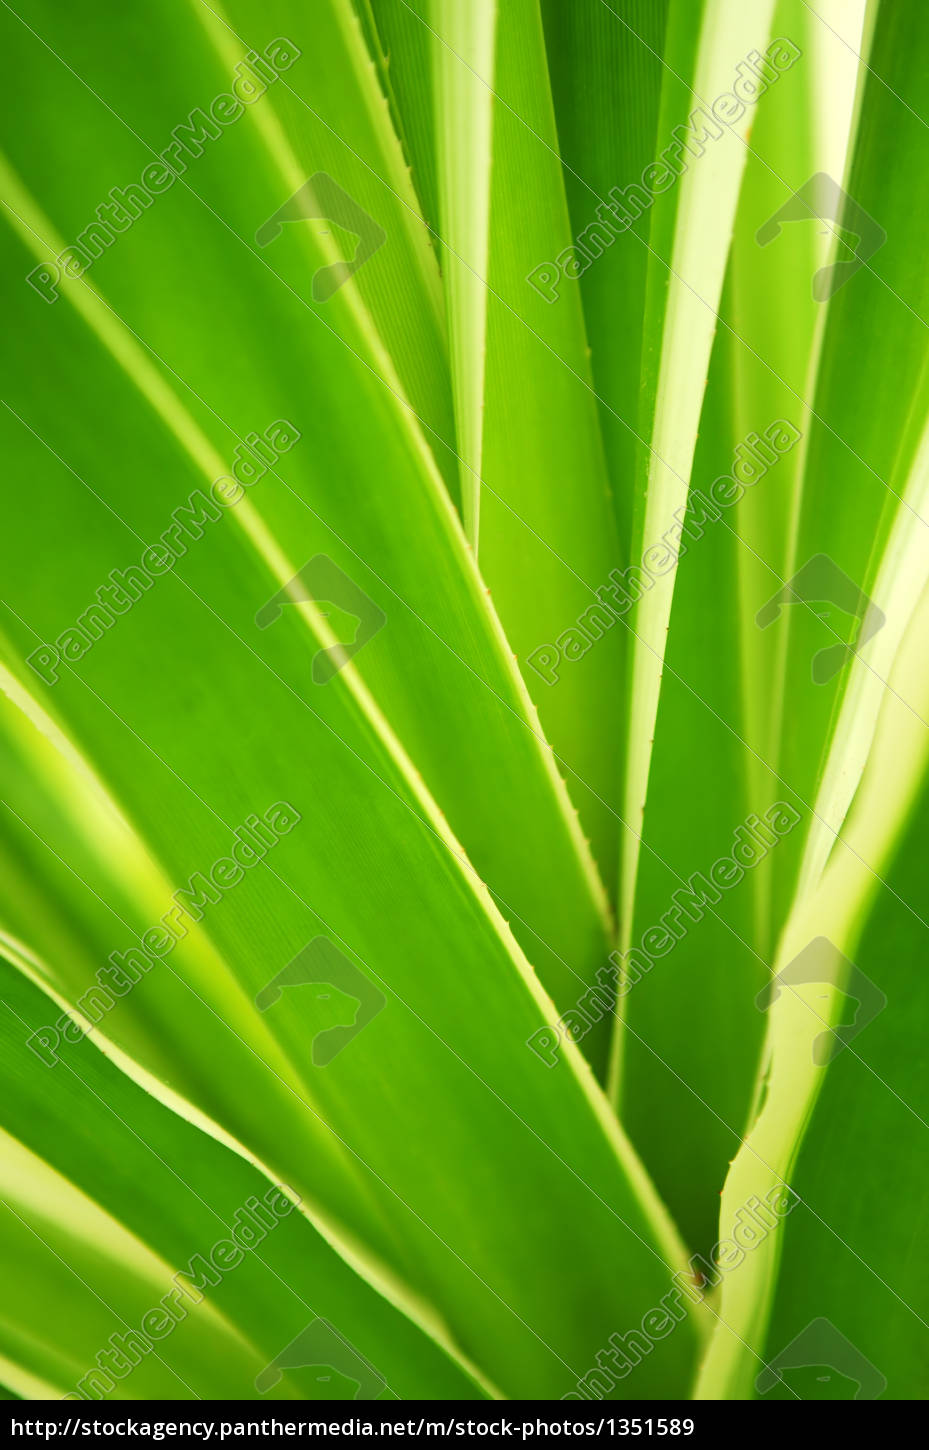 tropical, leaves - 1351589